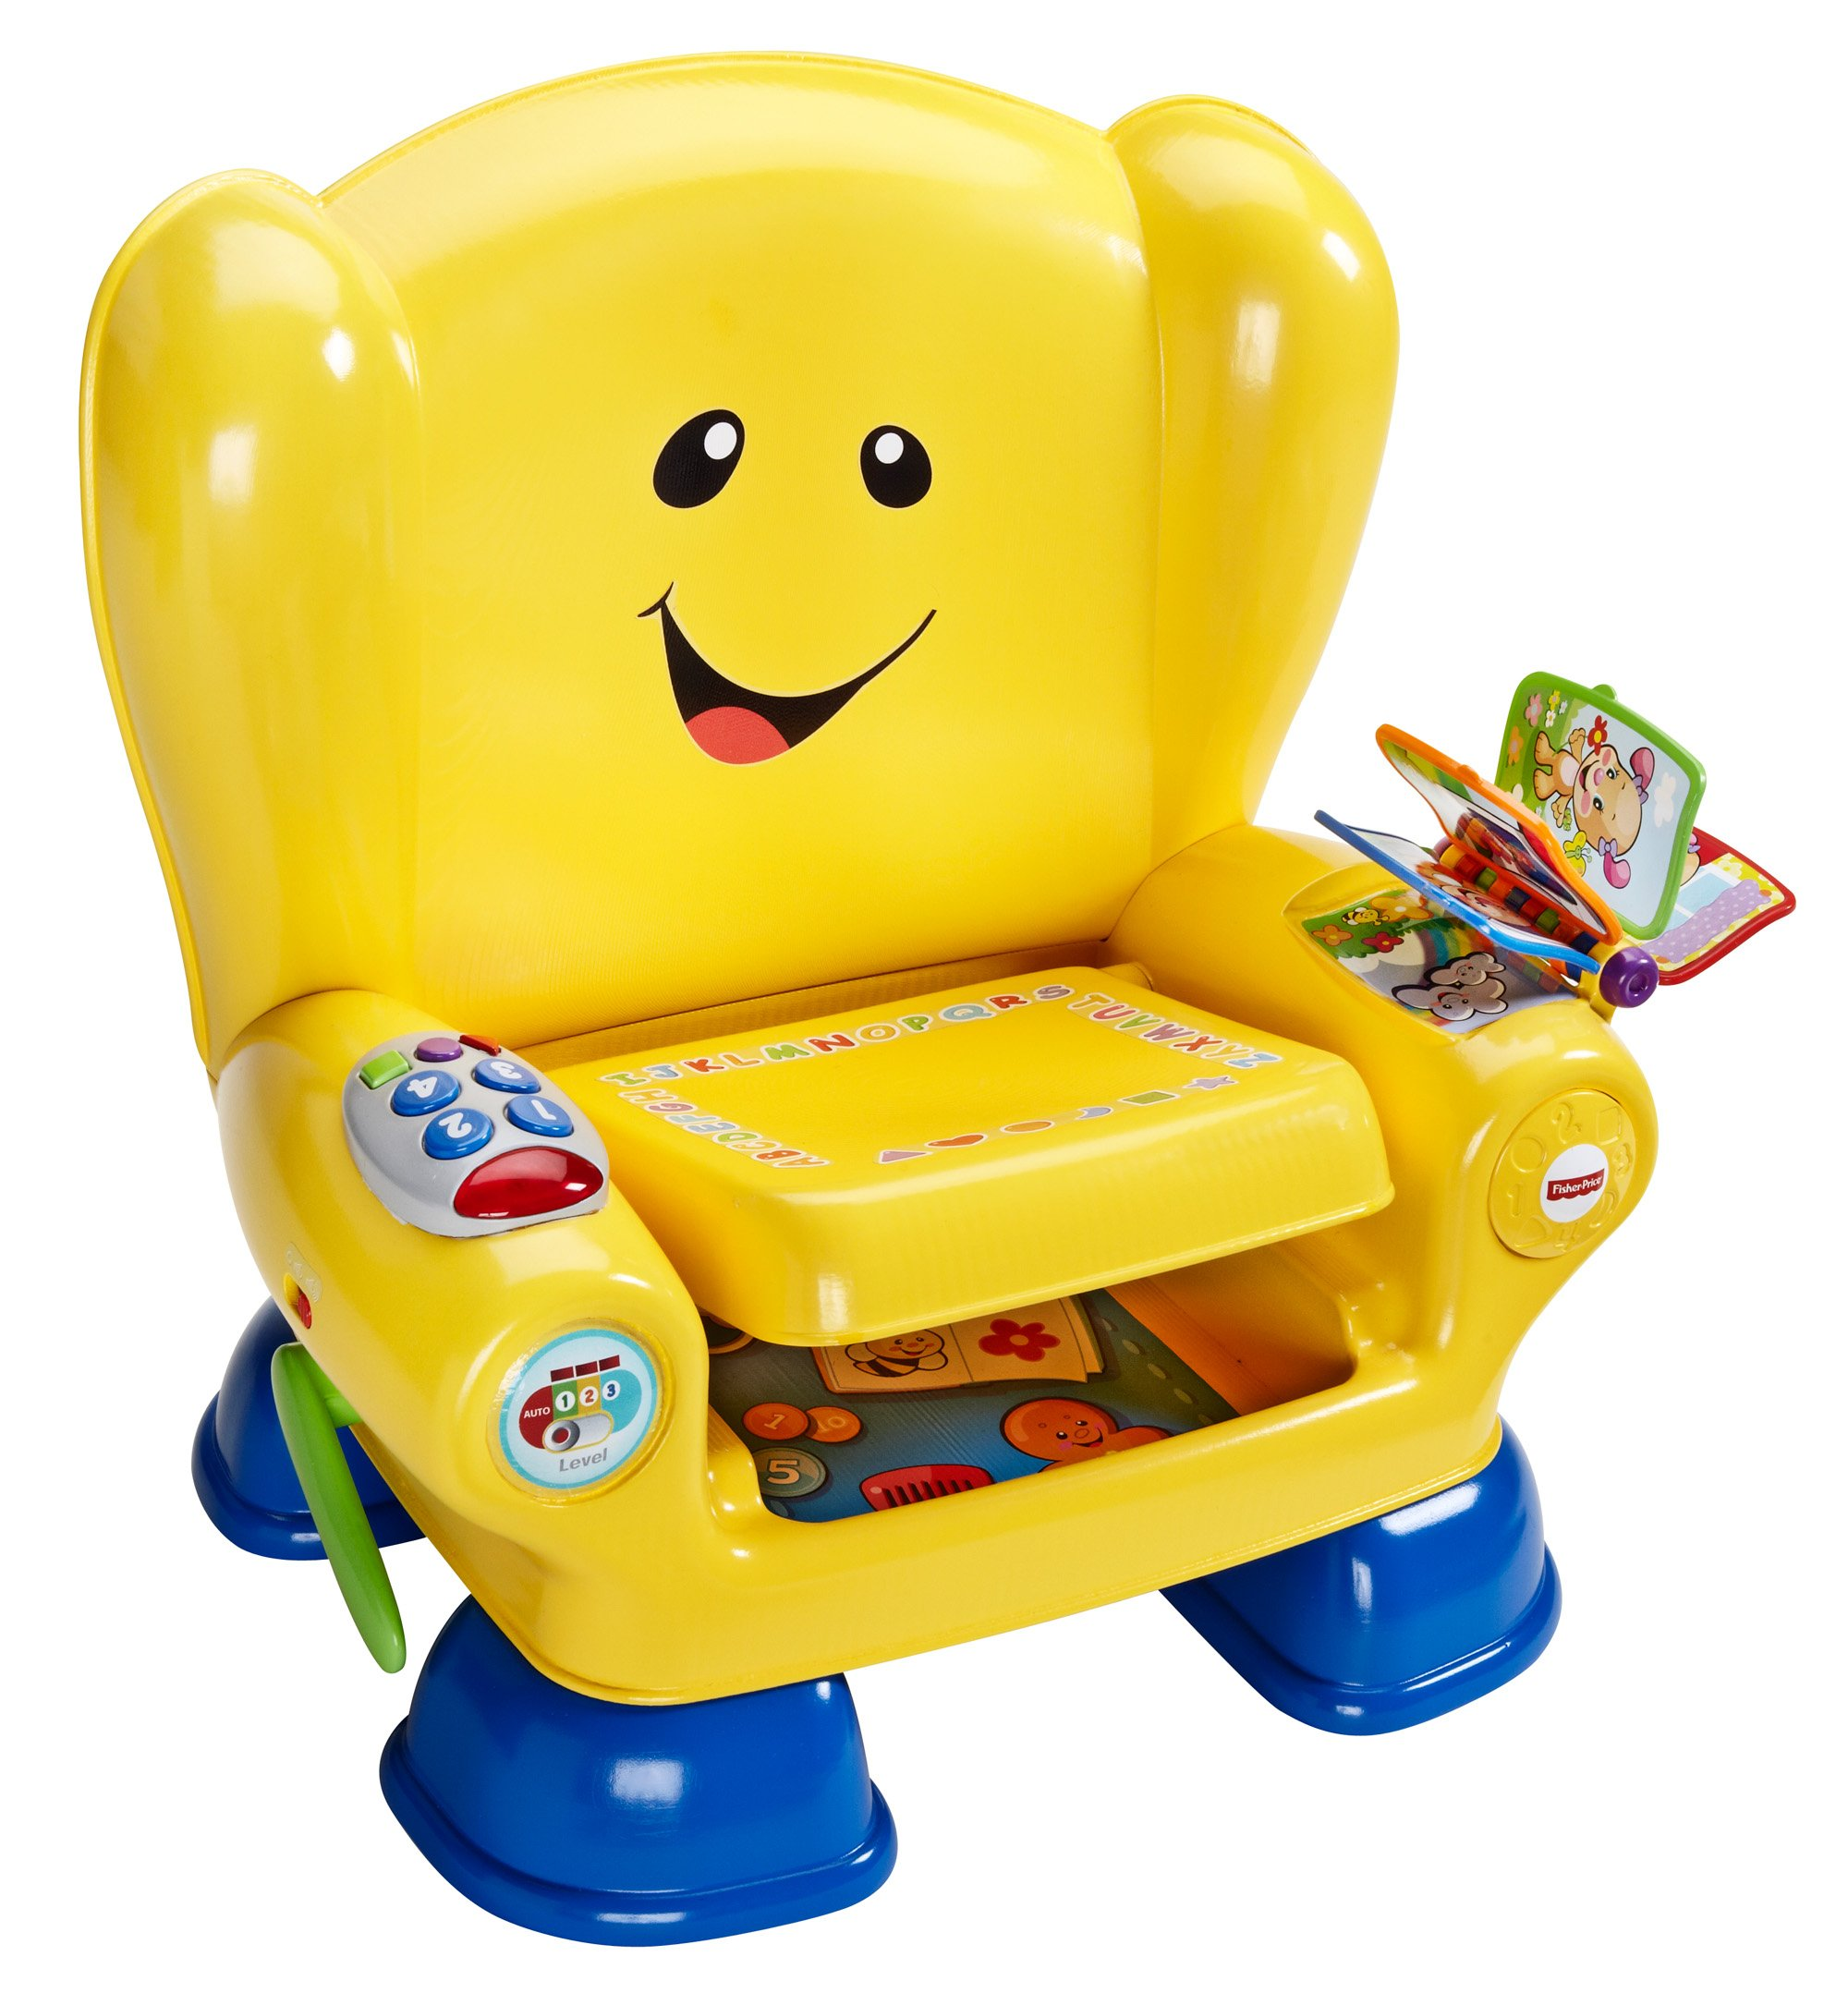 Fisher-Price Smart Stages Chair Yellow by Fisher-Price (Image #1)